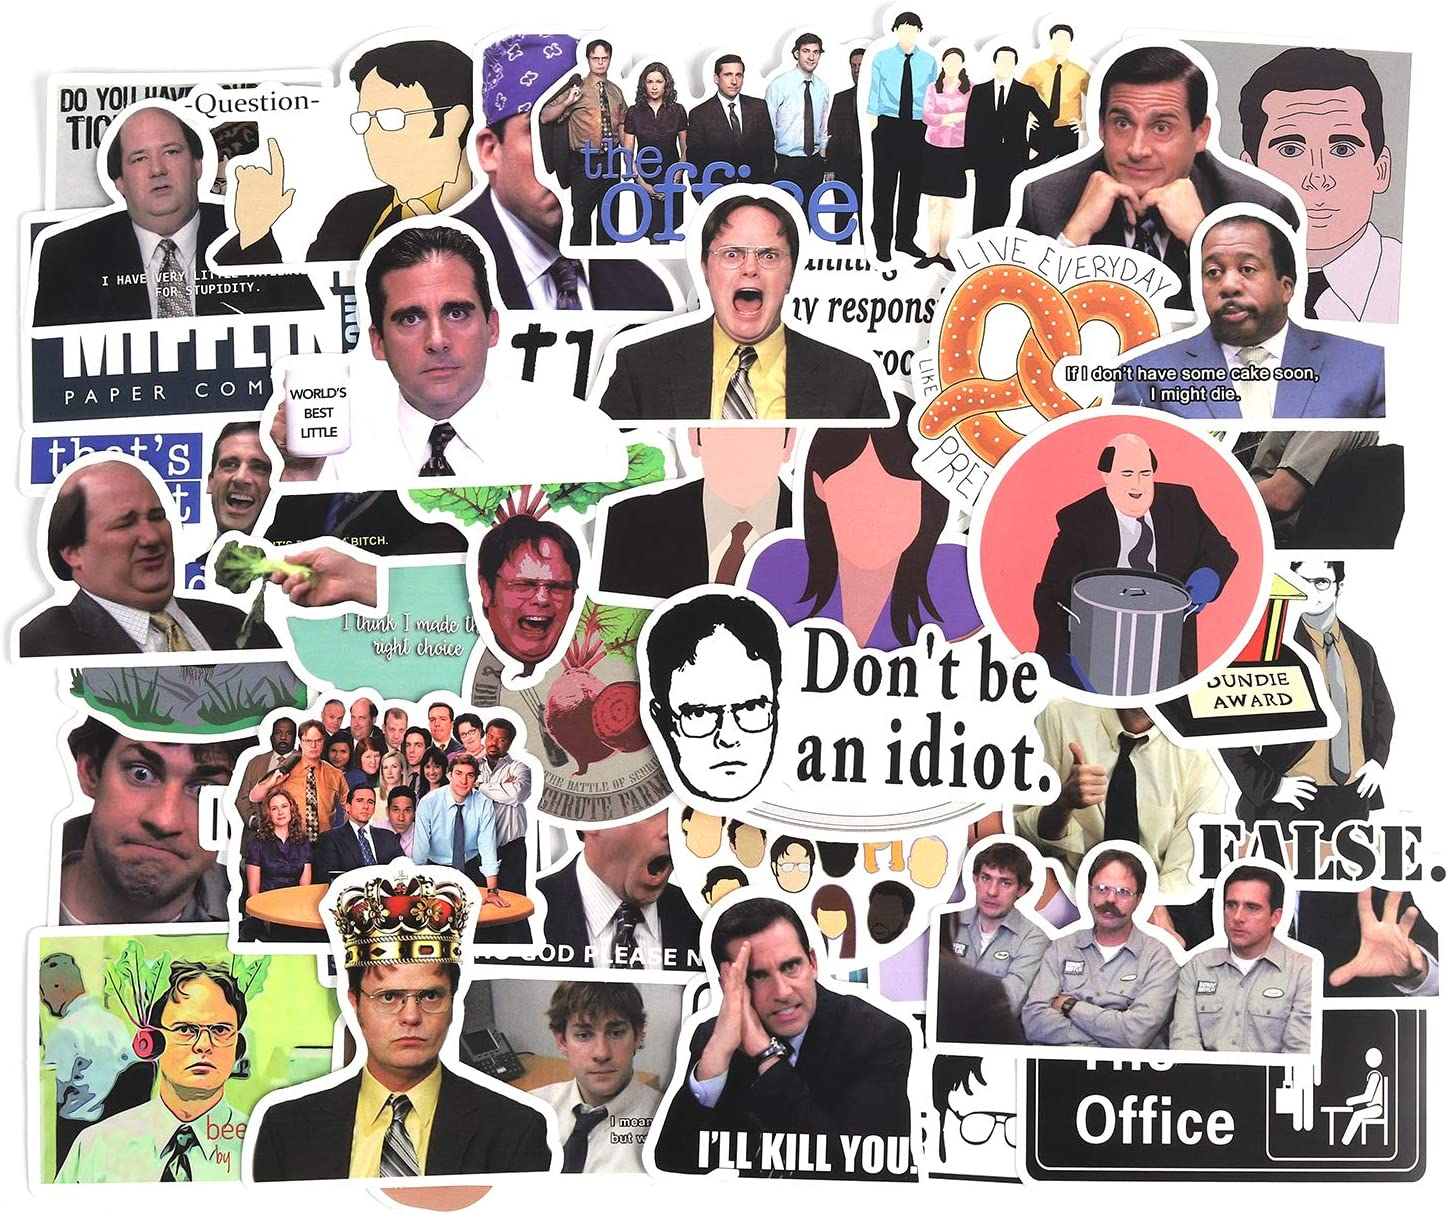 WINCANG The Office Sticker Pack of 50 Stickers - The Office Laptop Waterproof Stickers,Trendy Vinyl Laptop Stickers, Funny Stickers for Laptops,Water Bottles, Computers, Hydro Flasks,Travel Case